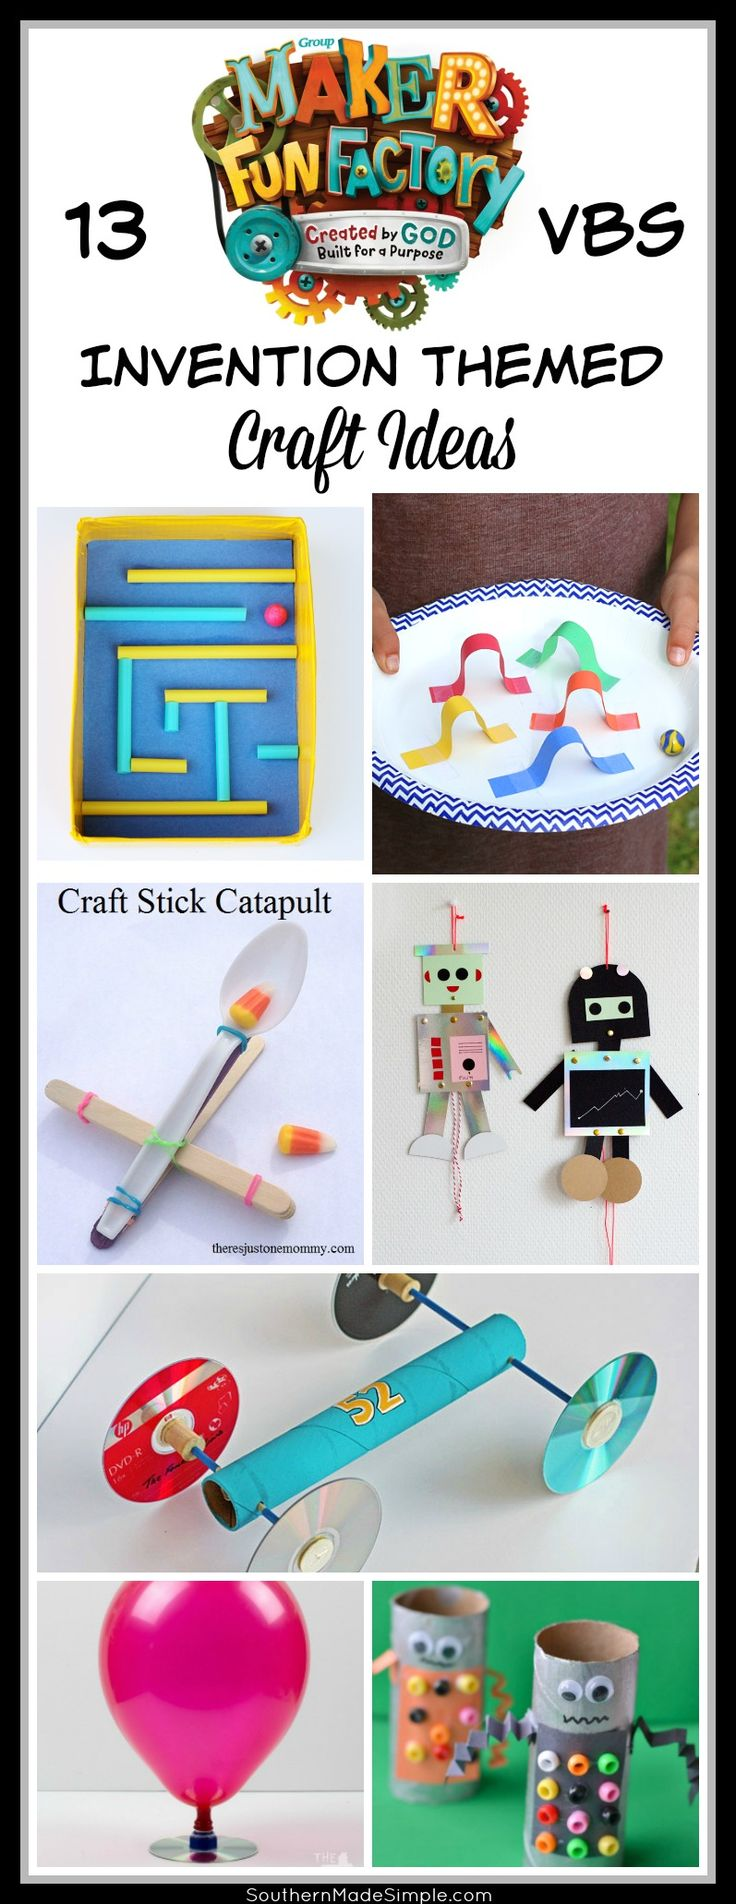 257 best maker fun factory vbs 2017 images on pinterest sunday 13 maker fun factory craft ideas vbs invention inspired craft ideas robot craft ideas malvernweather Choice Image